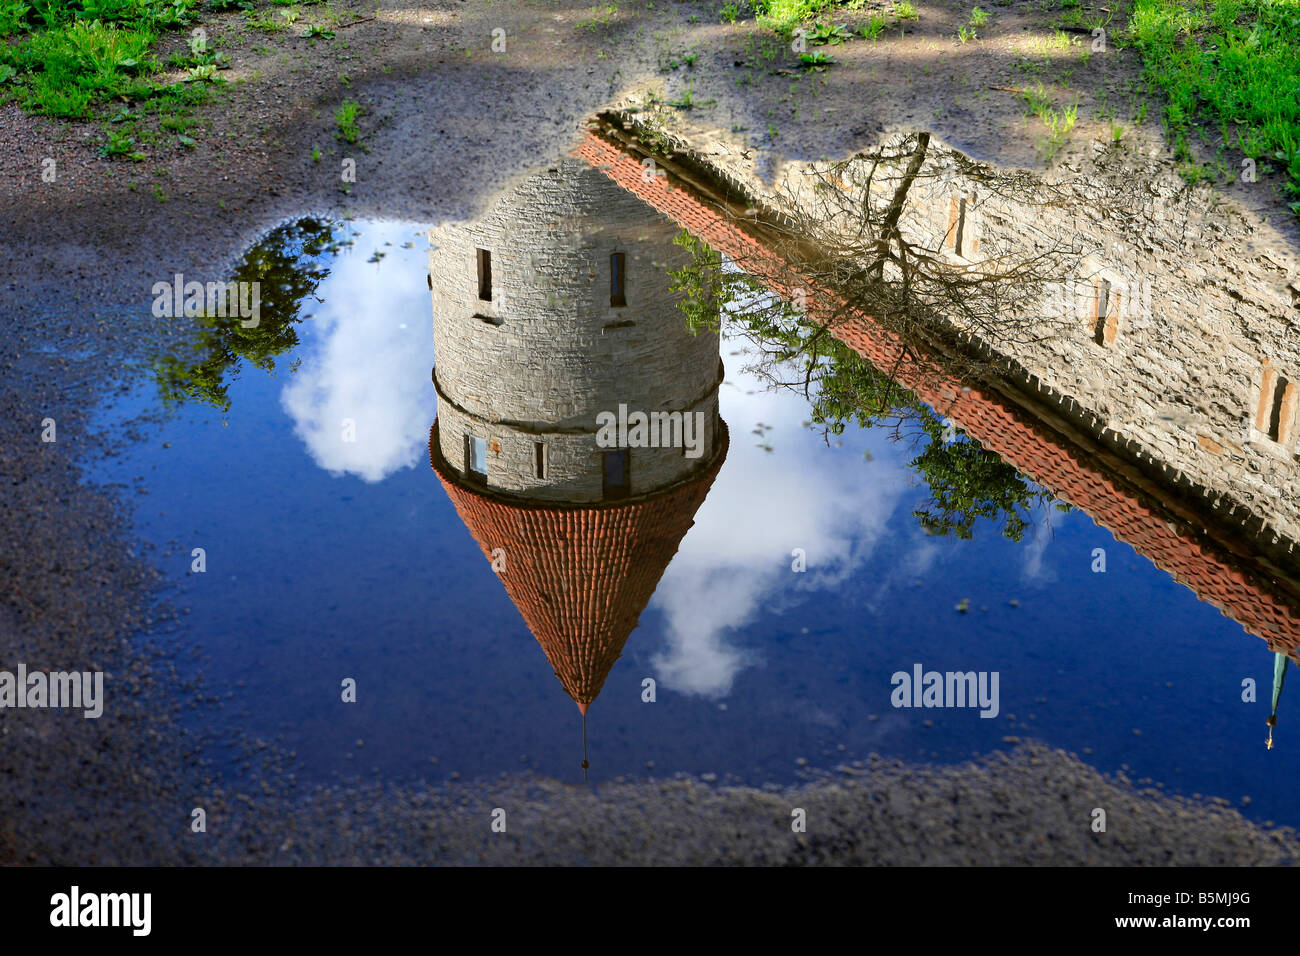 Reflection in a pool of water of medieval castle tower and rampart in Tallinn, Estonia - Stock Image